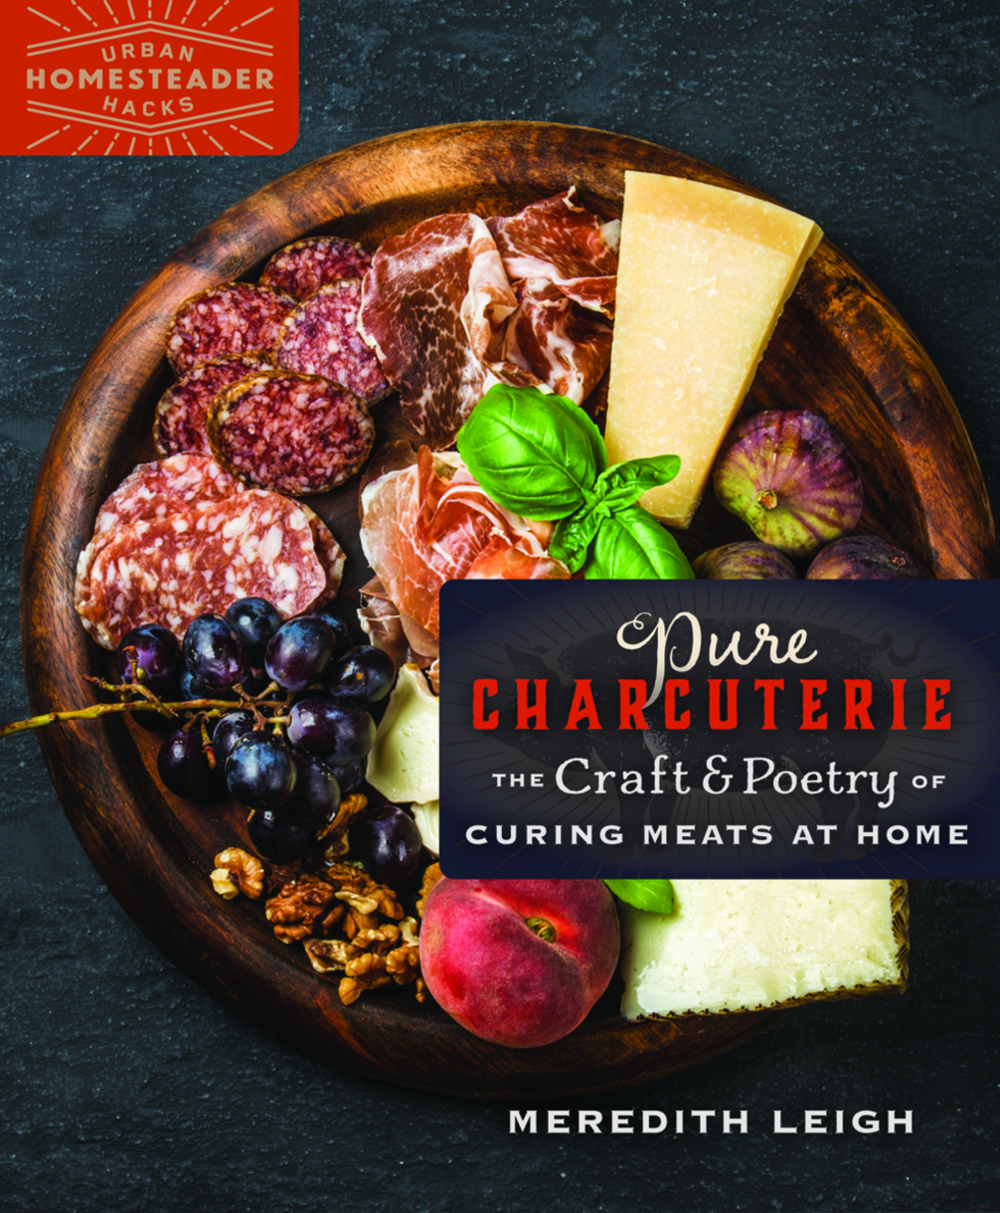 Meredith Leigh - farmer, butcher, charcuterie artist, and writer  Create beautiful cured meats in your own kitchen, revel in the delicious combination of craft and thrift, and discover creativity and empowerment through charcuterie practice. This book makes a case for meat preservation not only as a means of artistic expression and flavorful eating, but also as a form of activism. Includes delicious recipes that are reverent to tradition but evolved, reflecting culinary inventiveness. Color photo tutorials.   http://www.mereleighfood.com/books-1/